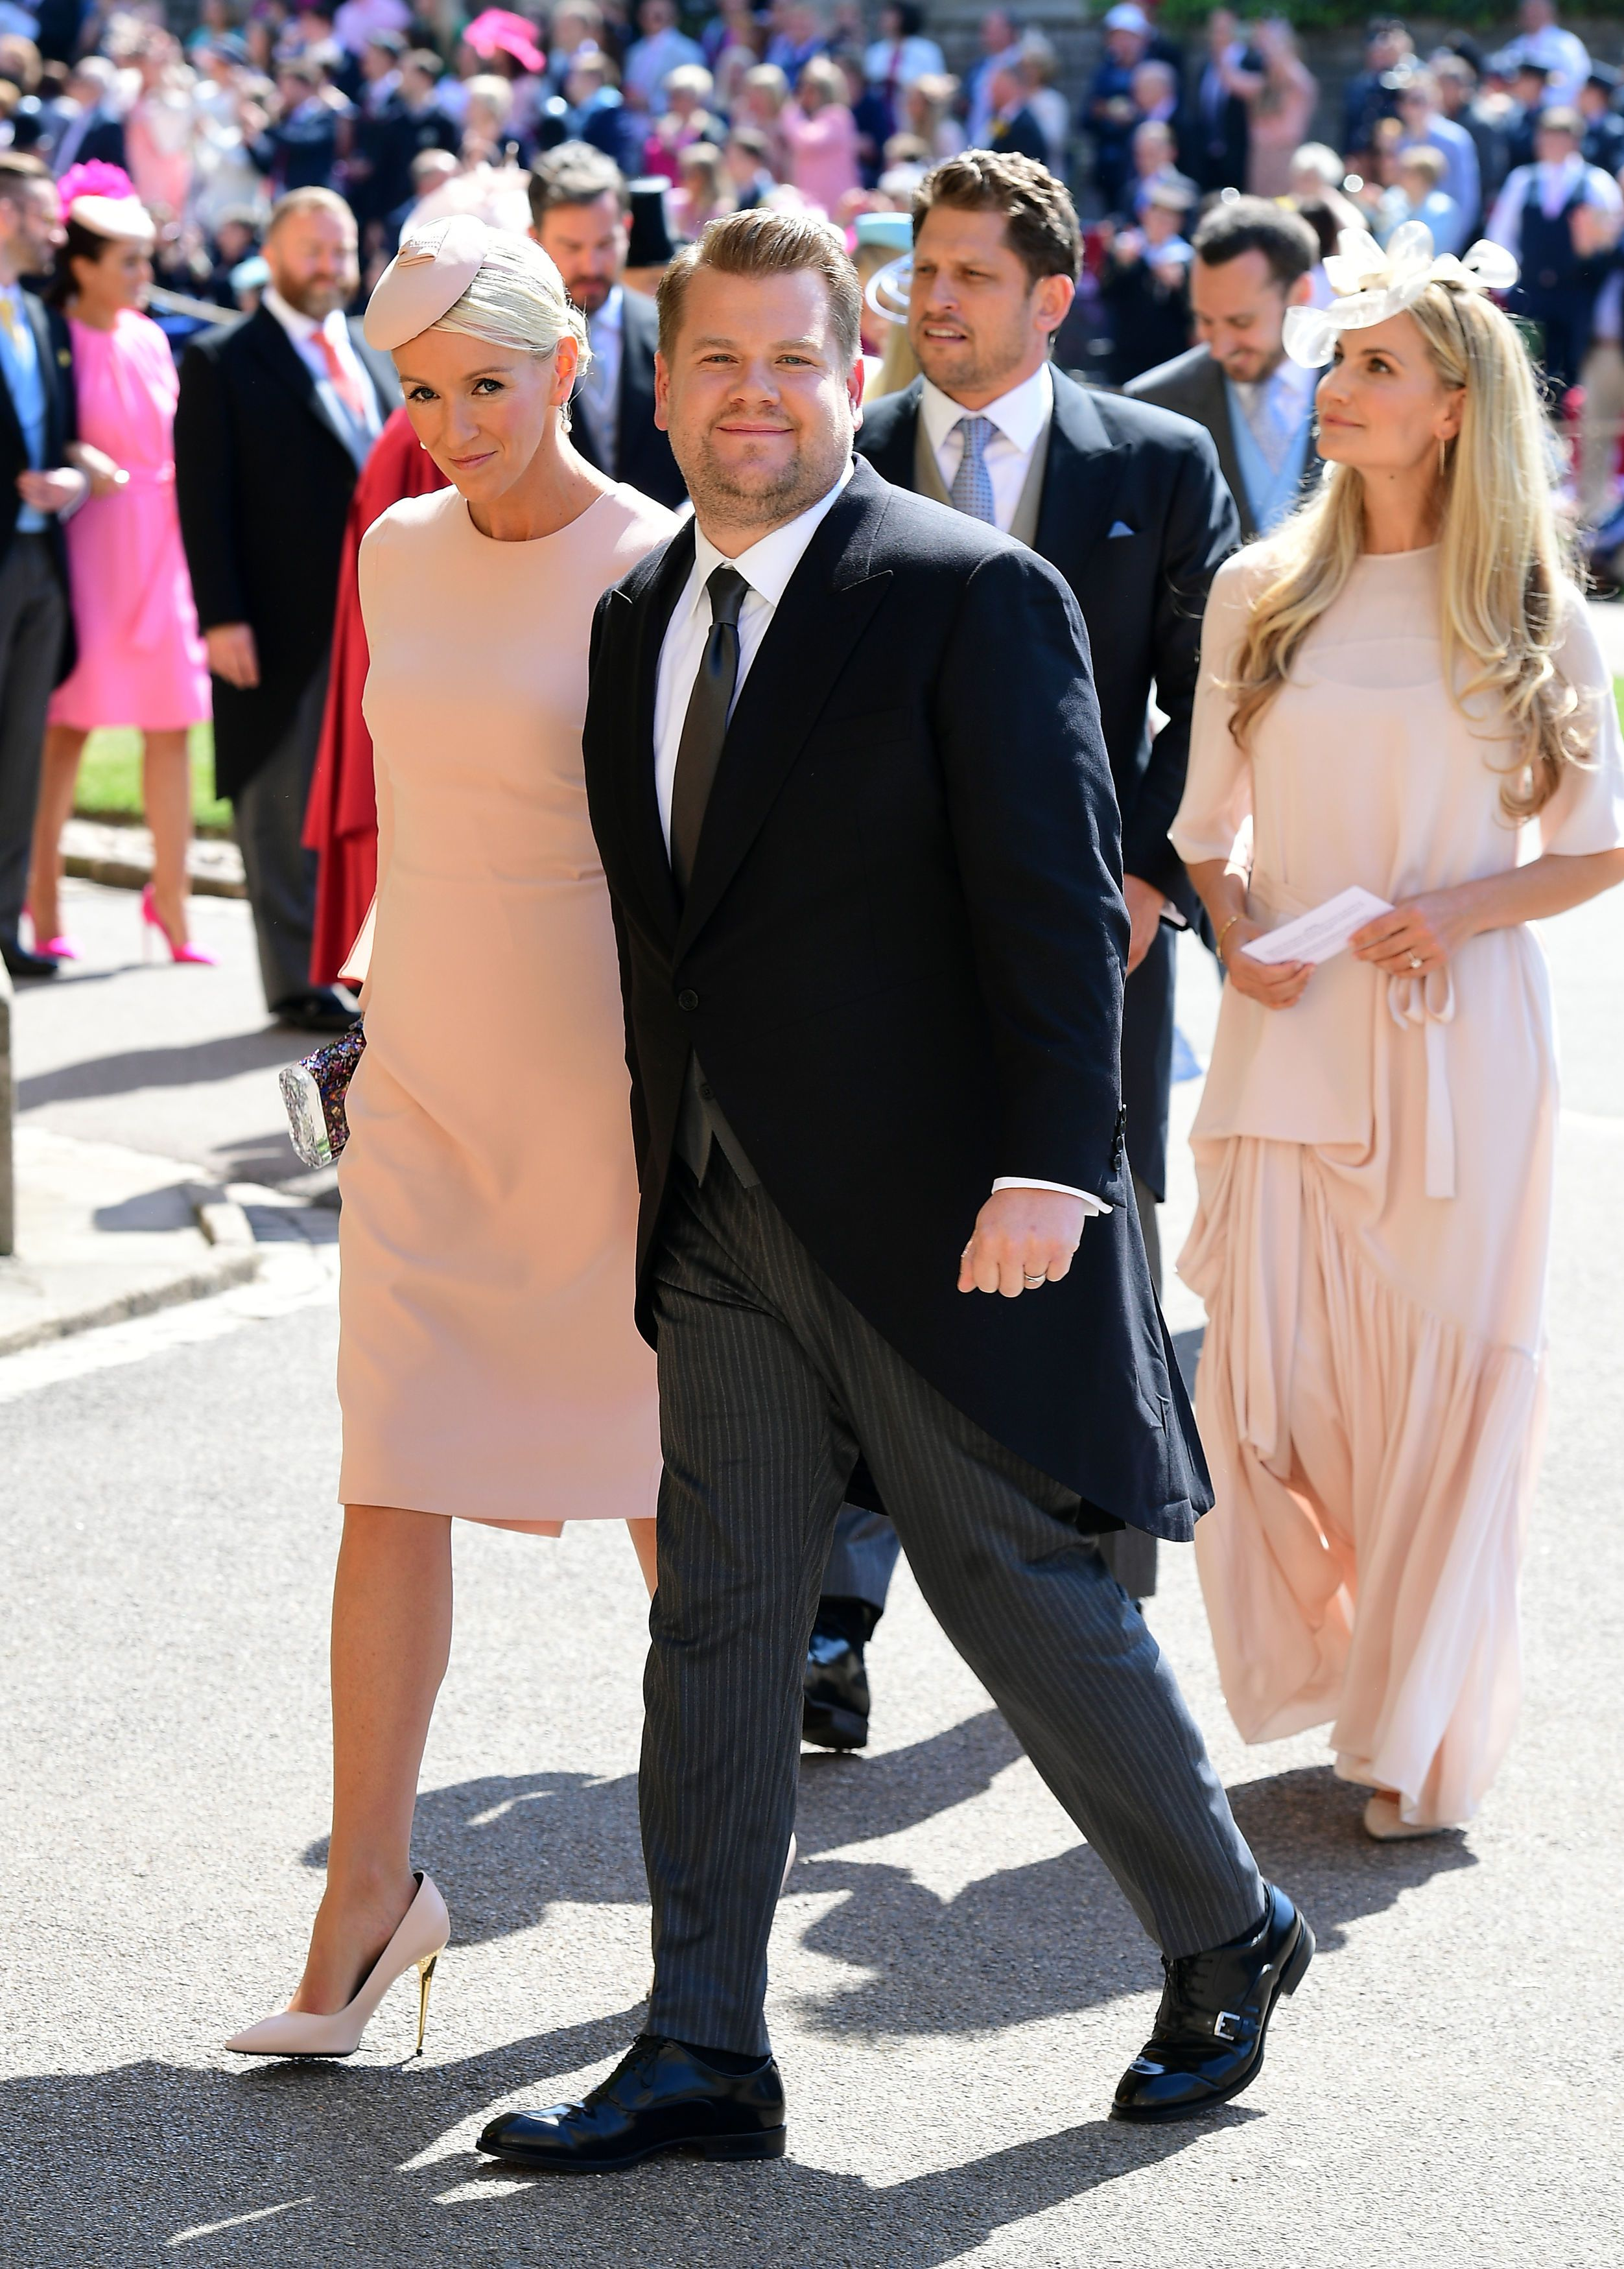 royal wedding 2018 James Corden Julia Carey